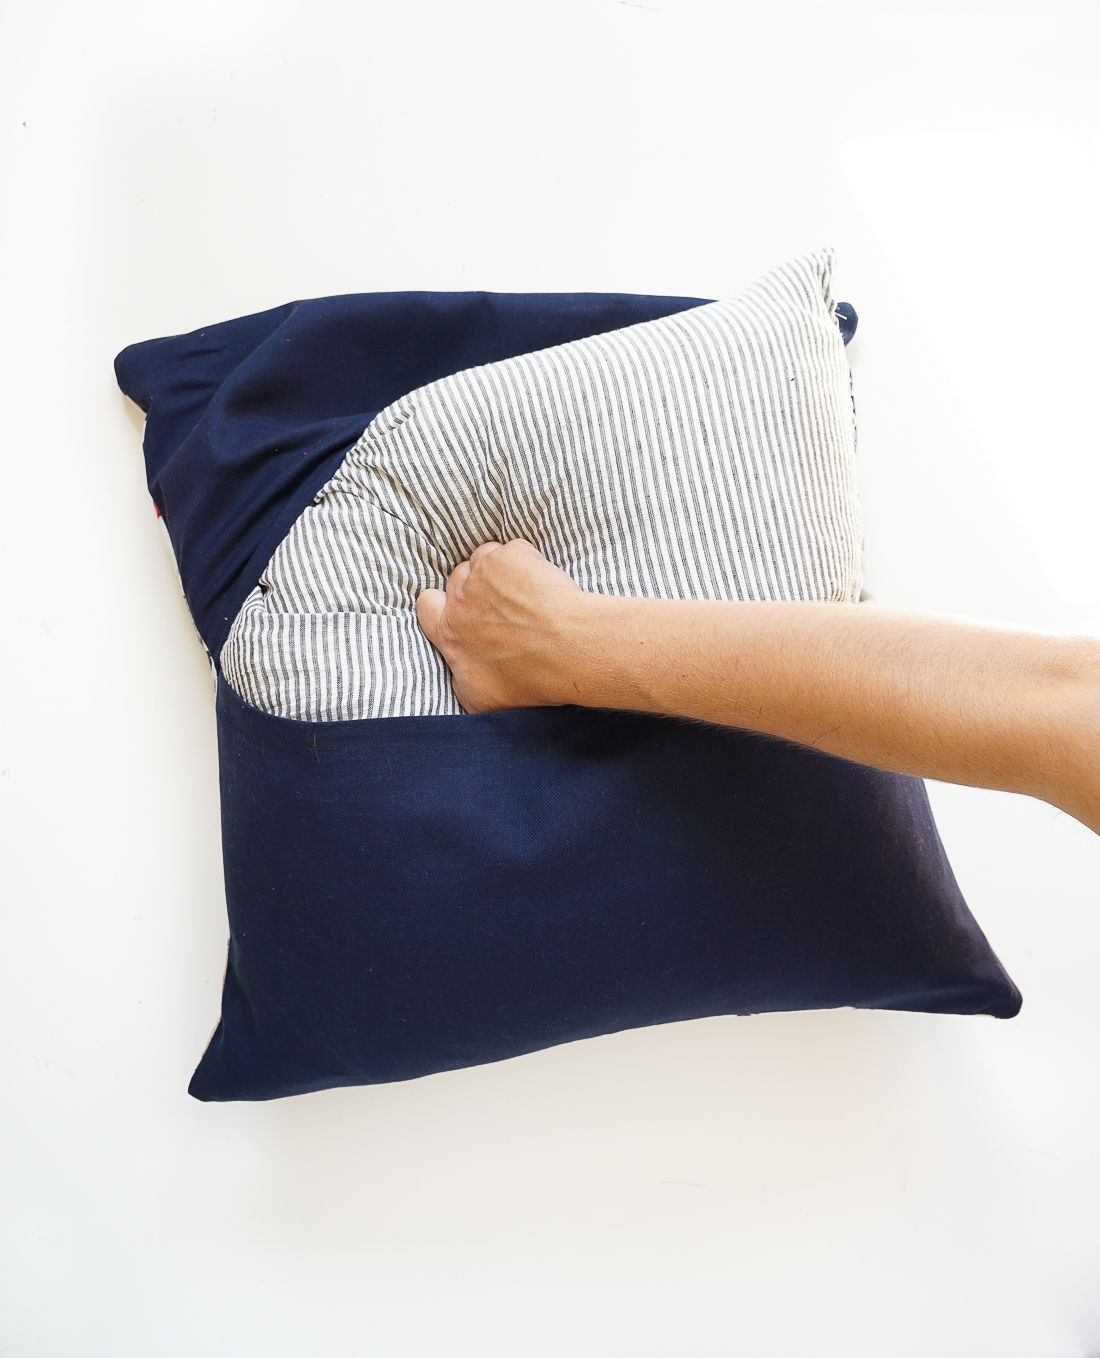 How To Make A Throw Pillow Without Sewing : The Easiest DIY Pillows EVER: No-Sew Envelope Pillows Made from Napkins - Francois et Moi